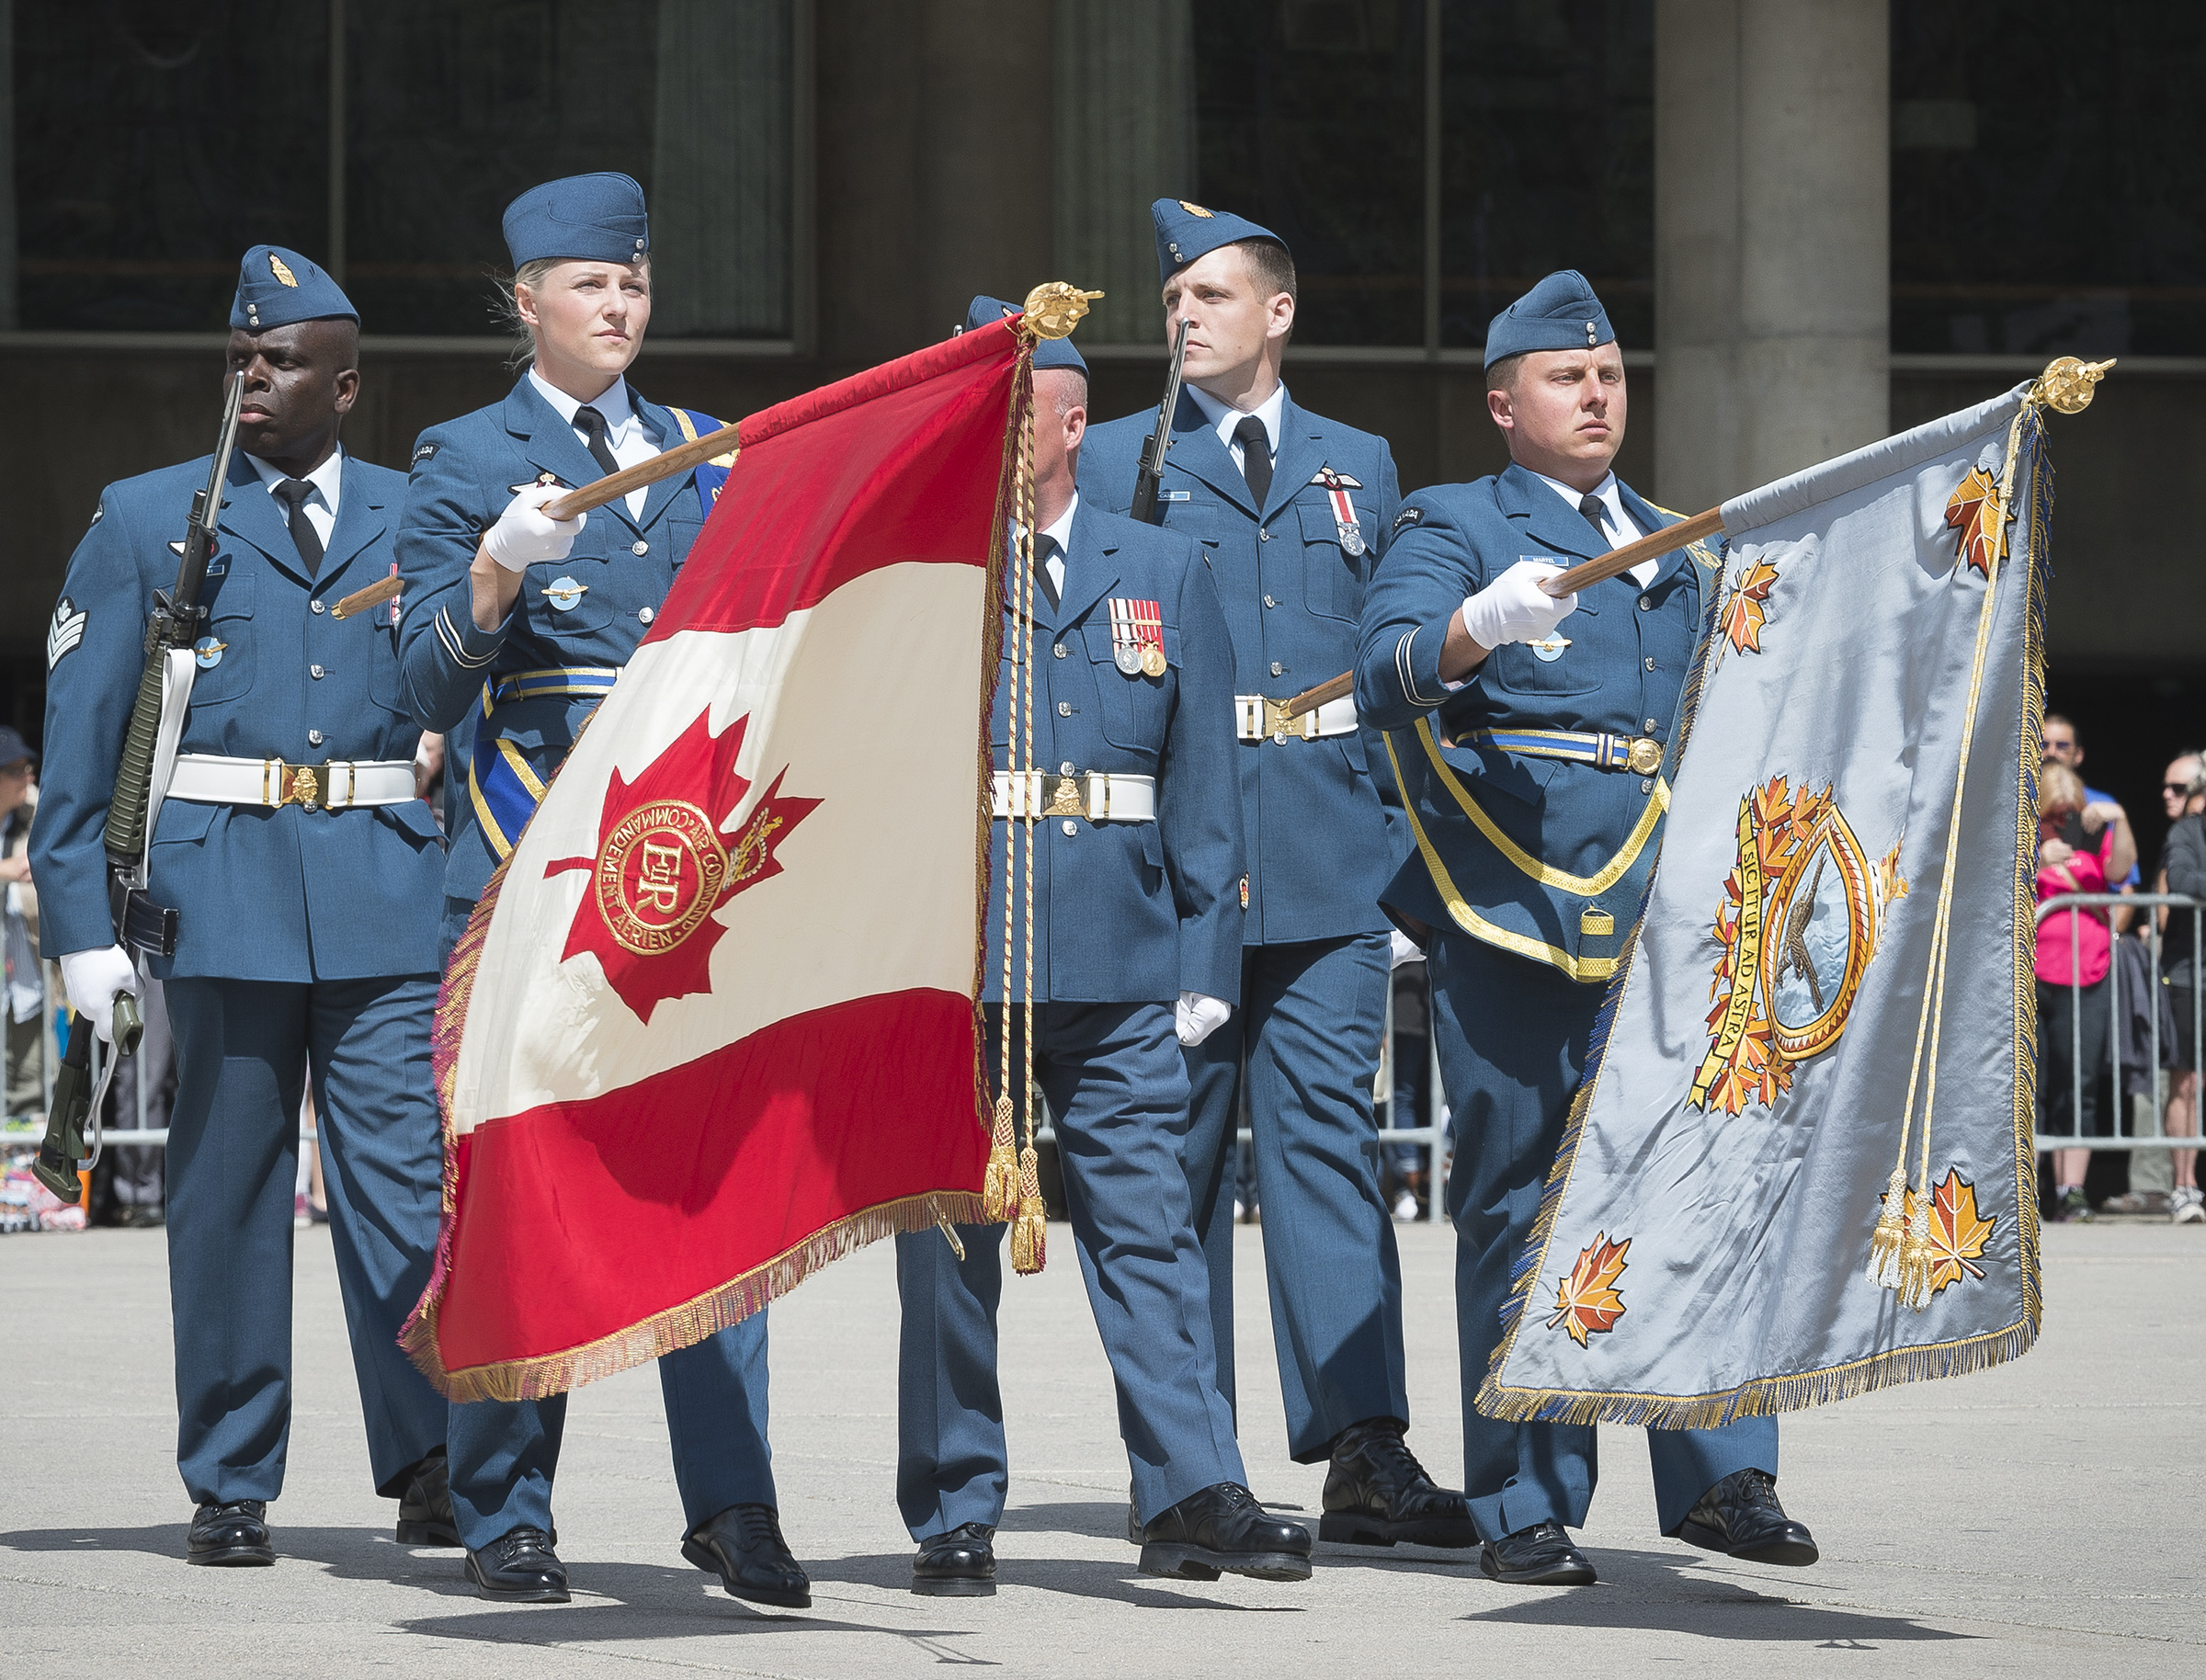 The retired Air Command Colours are paraded for the last time on September 1, 2017, at Nathan Phillips Square in Toronto. The Queen's Colour (left) is carried by Captain Emily Nissen and the Air Command Colour is carried by Captain Louis Martel. Both are from 402 Squadron, Winnipeg. PHOTO: Sergeant Johanie Maheu, Rideau Hall © OSGG, GG05-2017-0309-042